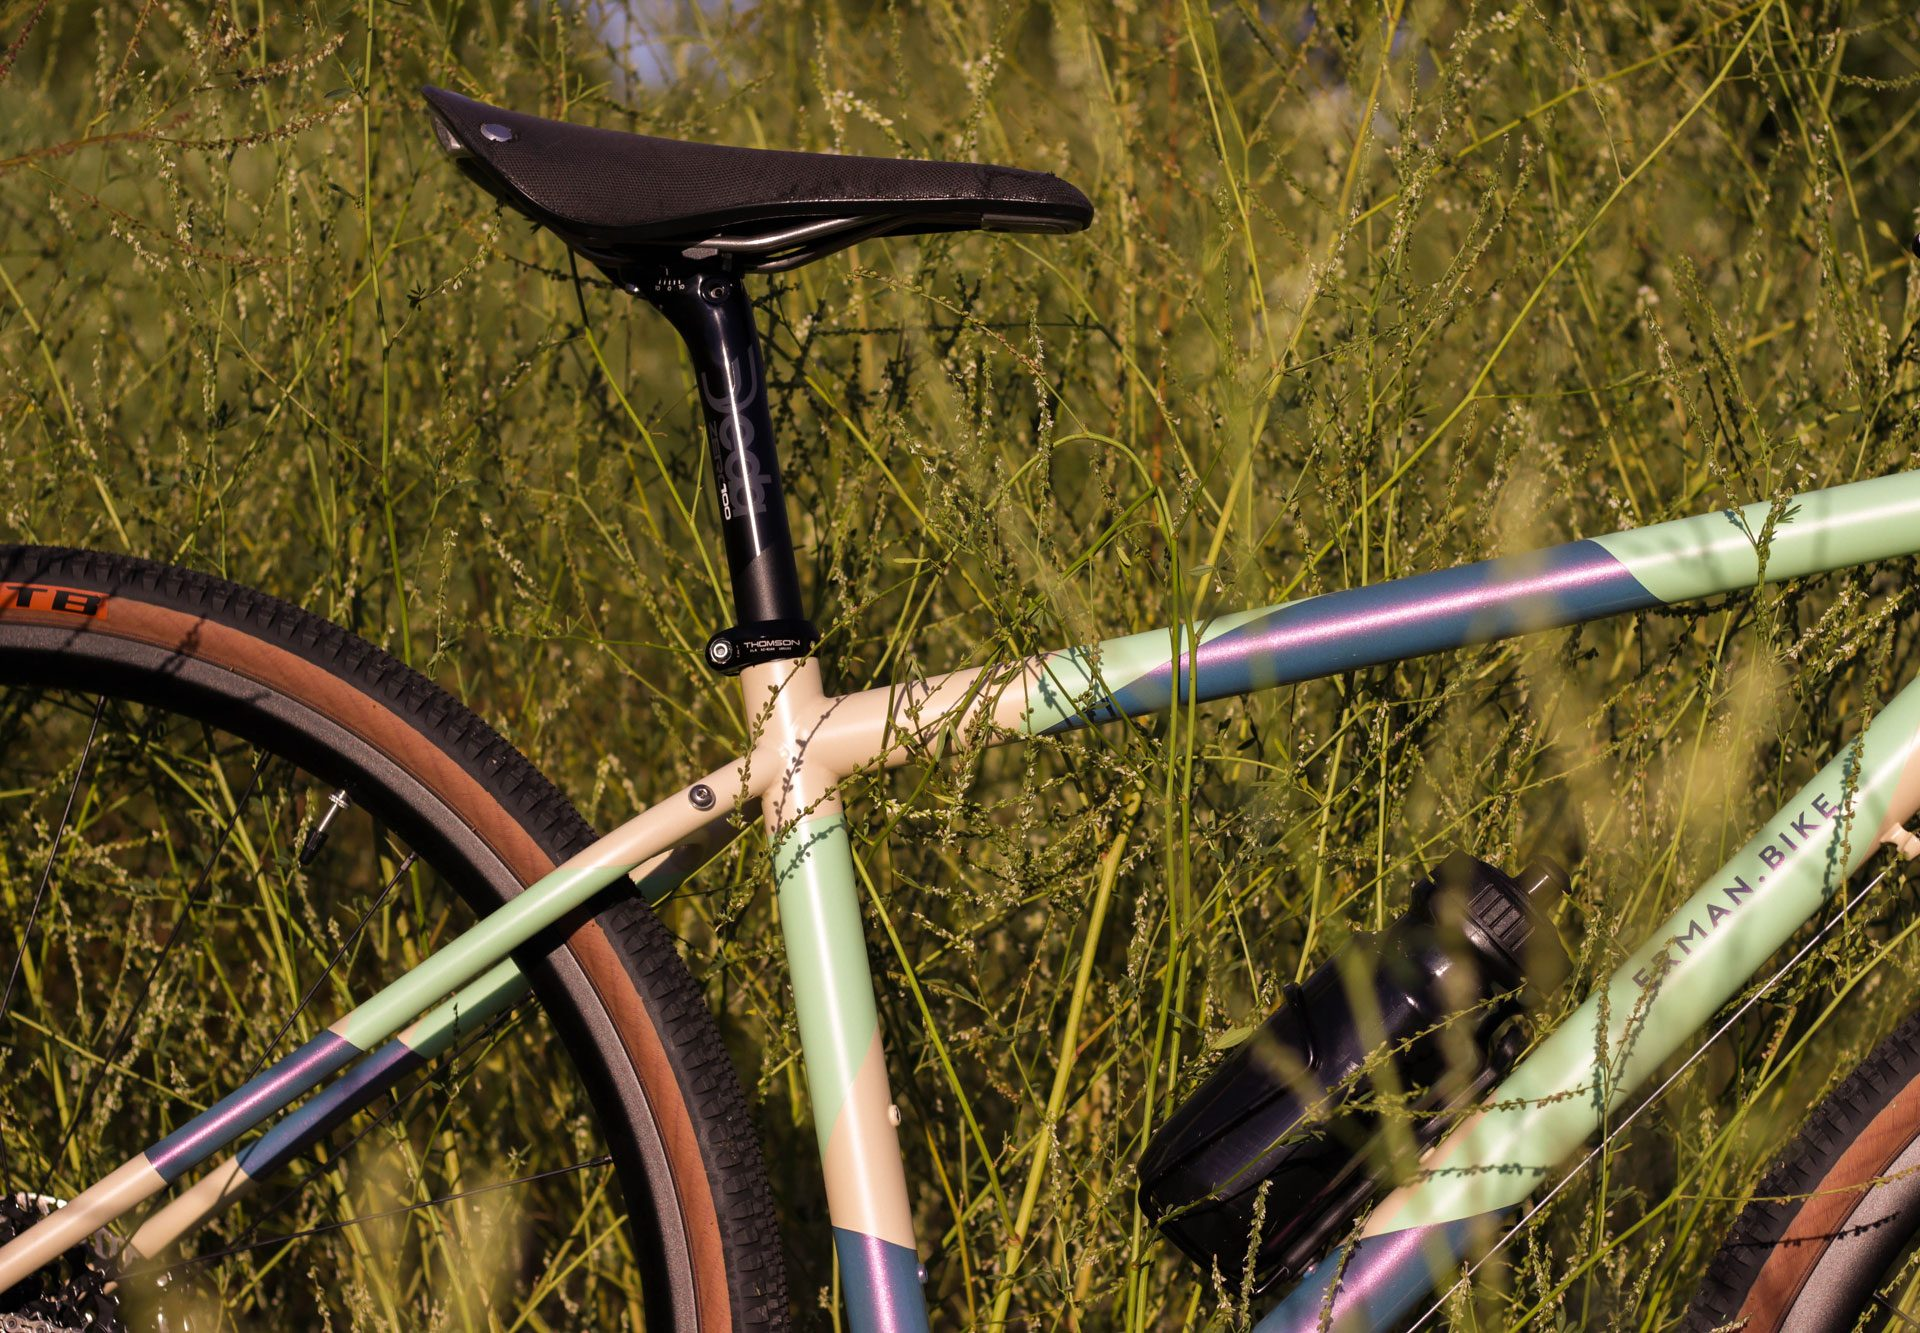 gravel_dapartott_erman_bike_modena